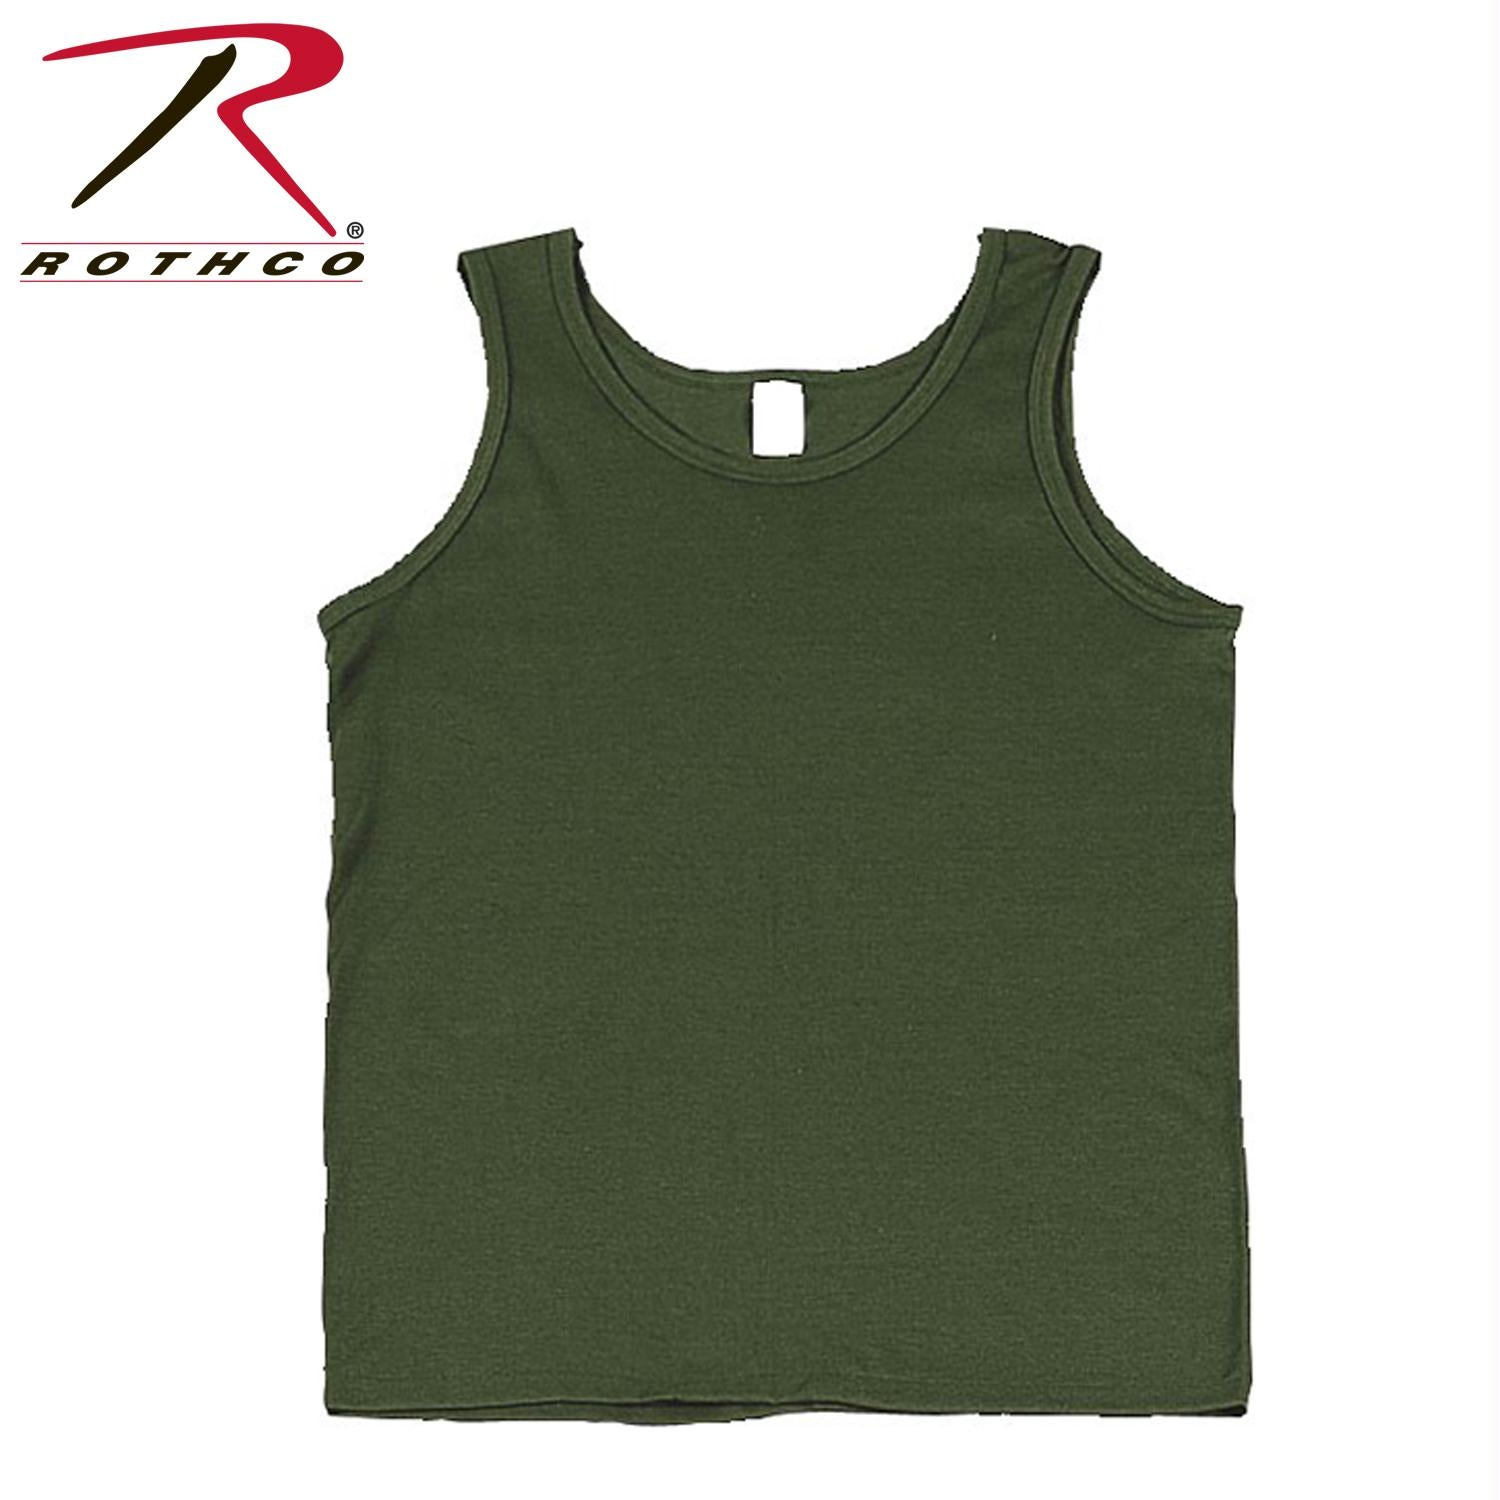 Rothco Tank Top - Olive Drab / XL